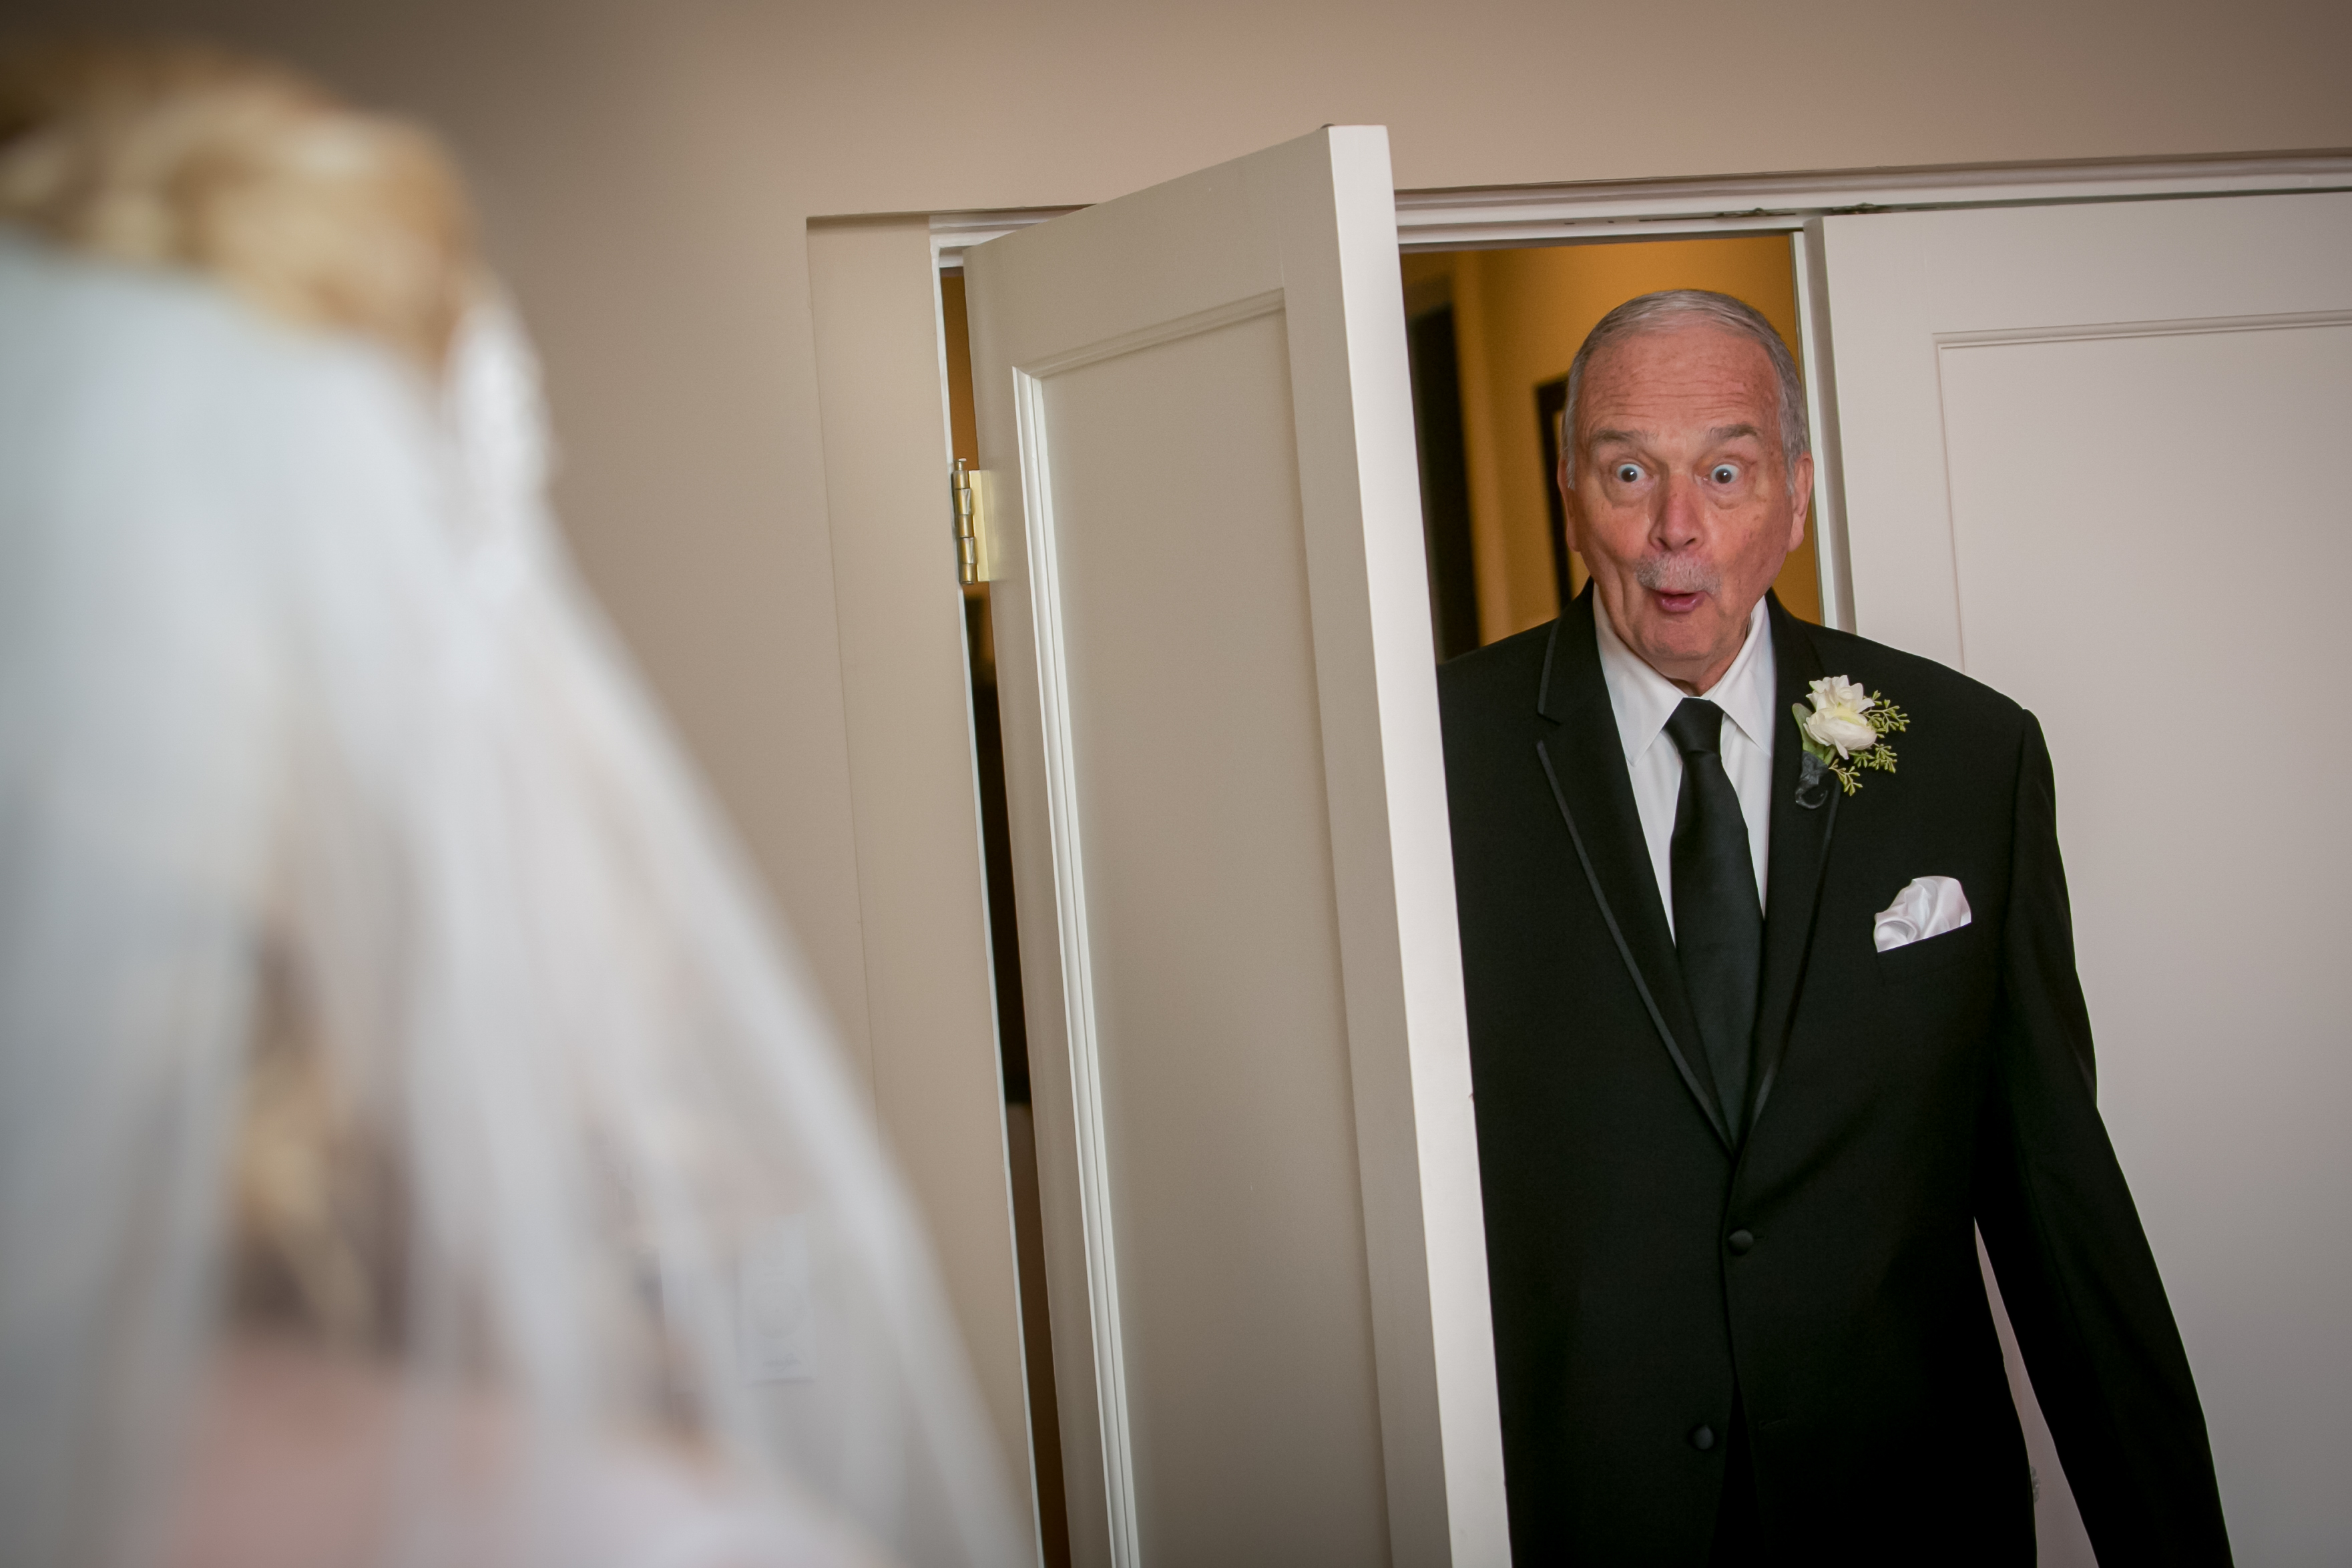 Dad's First Look